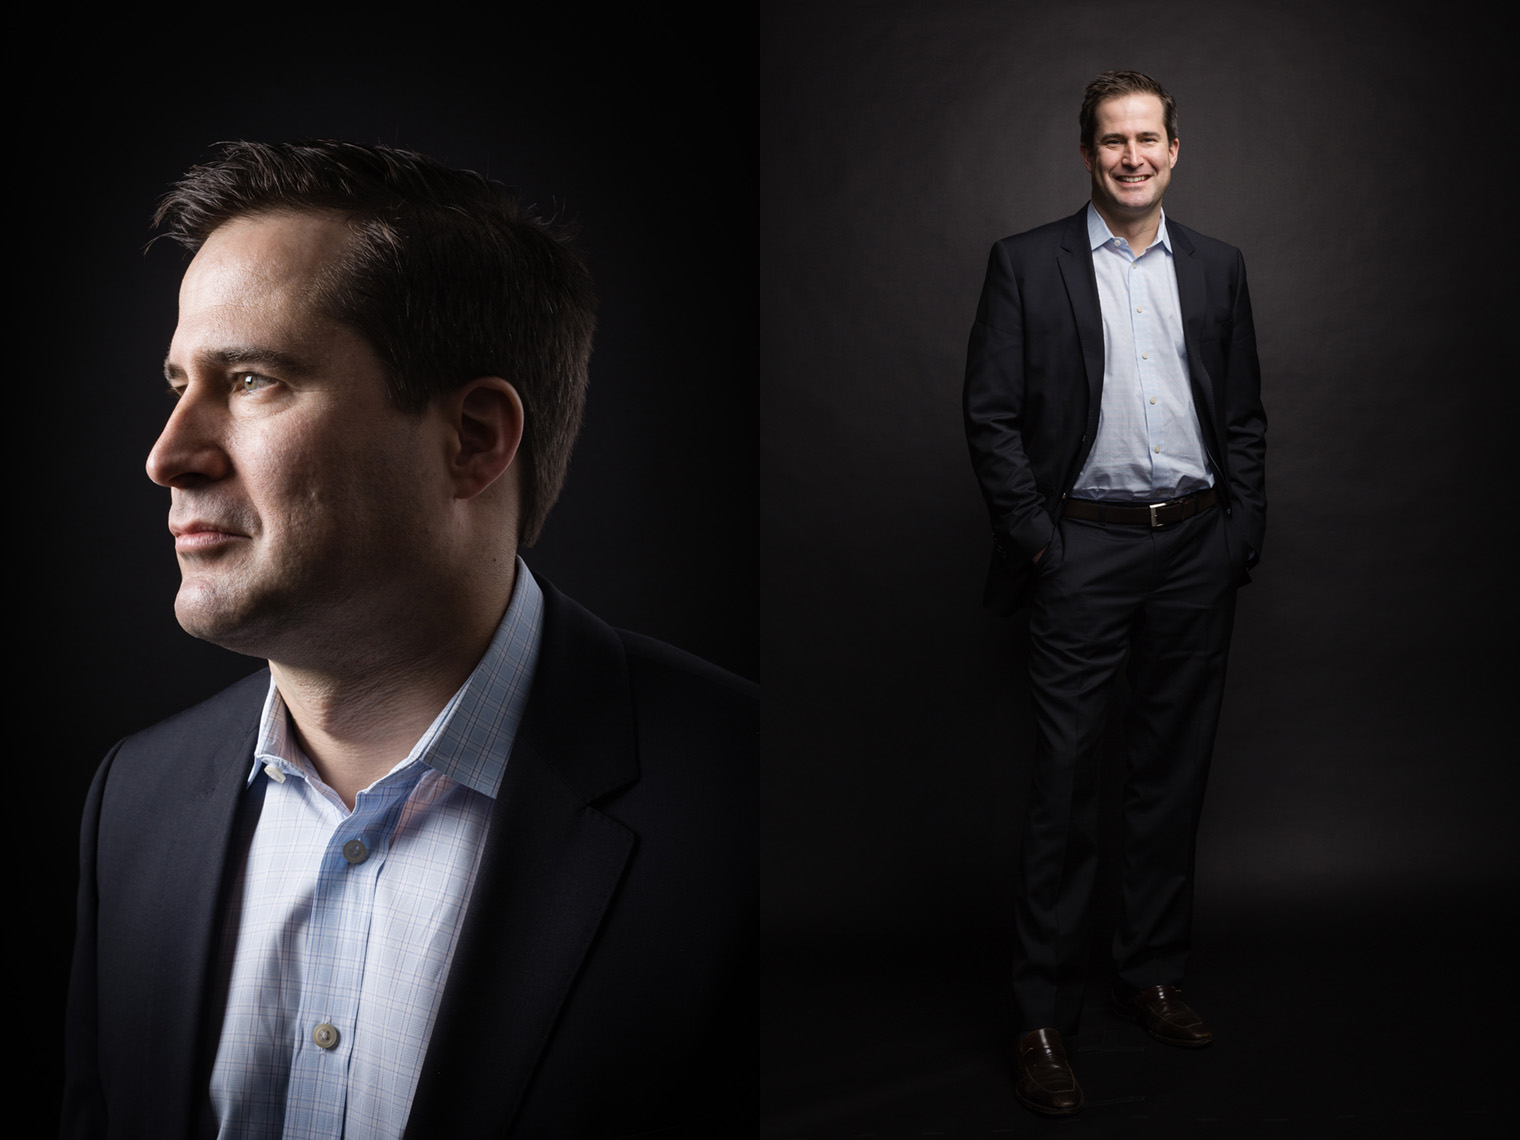 SETH MOULTON, (MA 6TH, D) - Photographed for Politico  • Jason Grow Photography